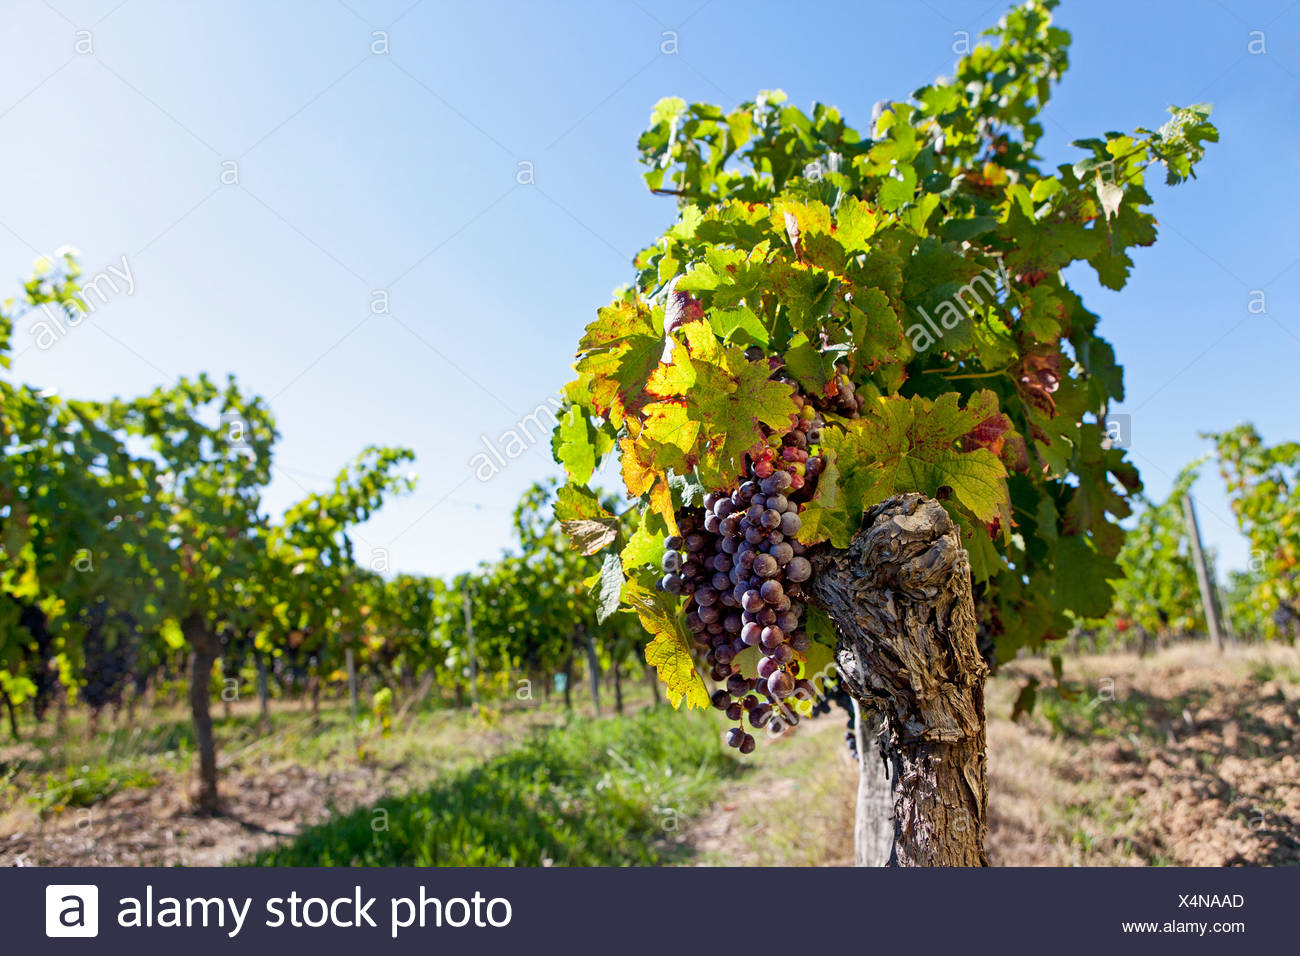 Bunches of purple grapes hanging on vine in vineyard - Stock Image